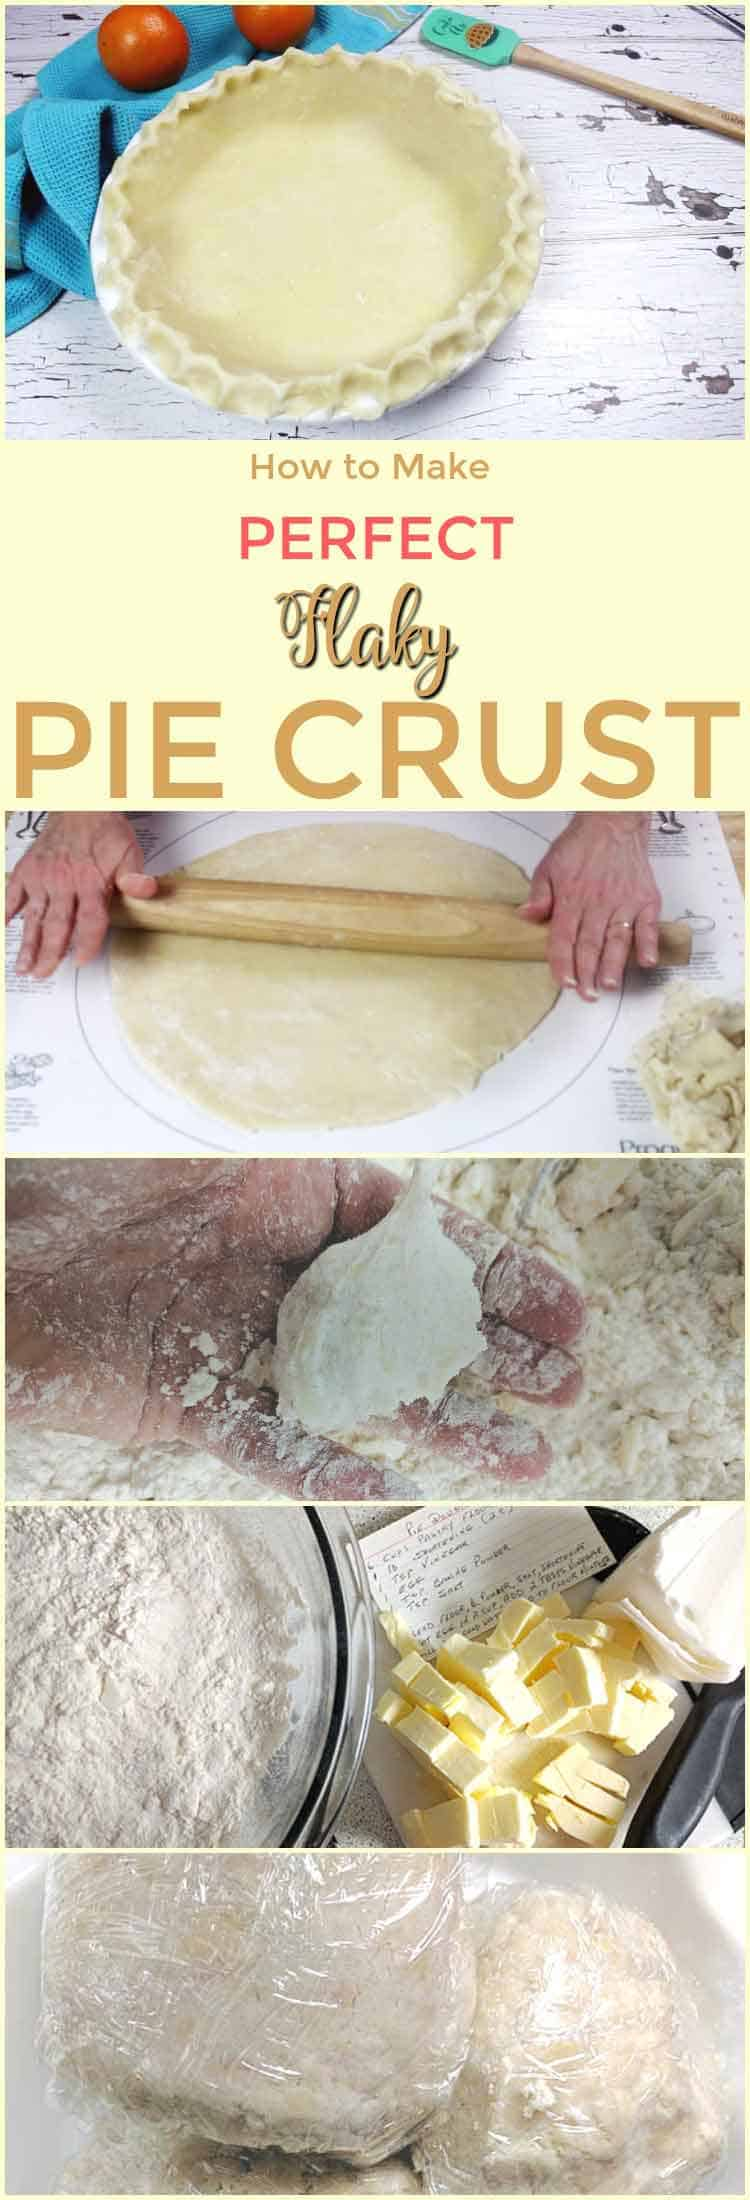 What is the secret to perfect flaky pie crust you ask? It's all about how you blend the flour and the fats, and roll out the pastry.  That's it! This recipe, video and step-by-step instructions will answer that question and also provide a free e-book How To Make Perfect Pie Crust. #howtomakeperfectpiecrust #perfectpies #perfectflakypiecrust #perfectpiecrust #oldfashionedrecipes #grandmasrecipes #bestpiecrust #easyaspie #pieladybakes #youcanliverichonless